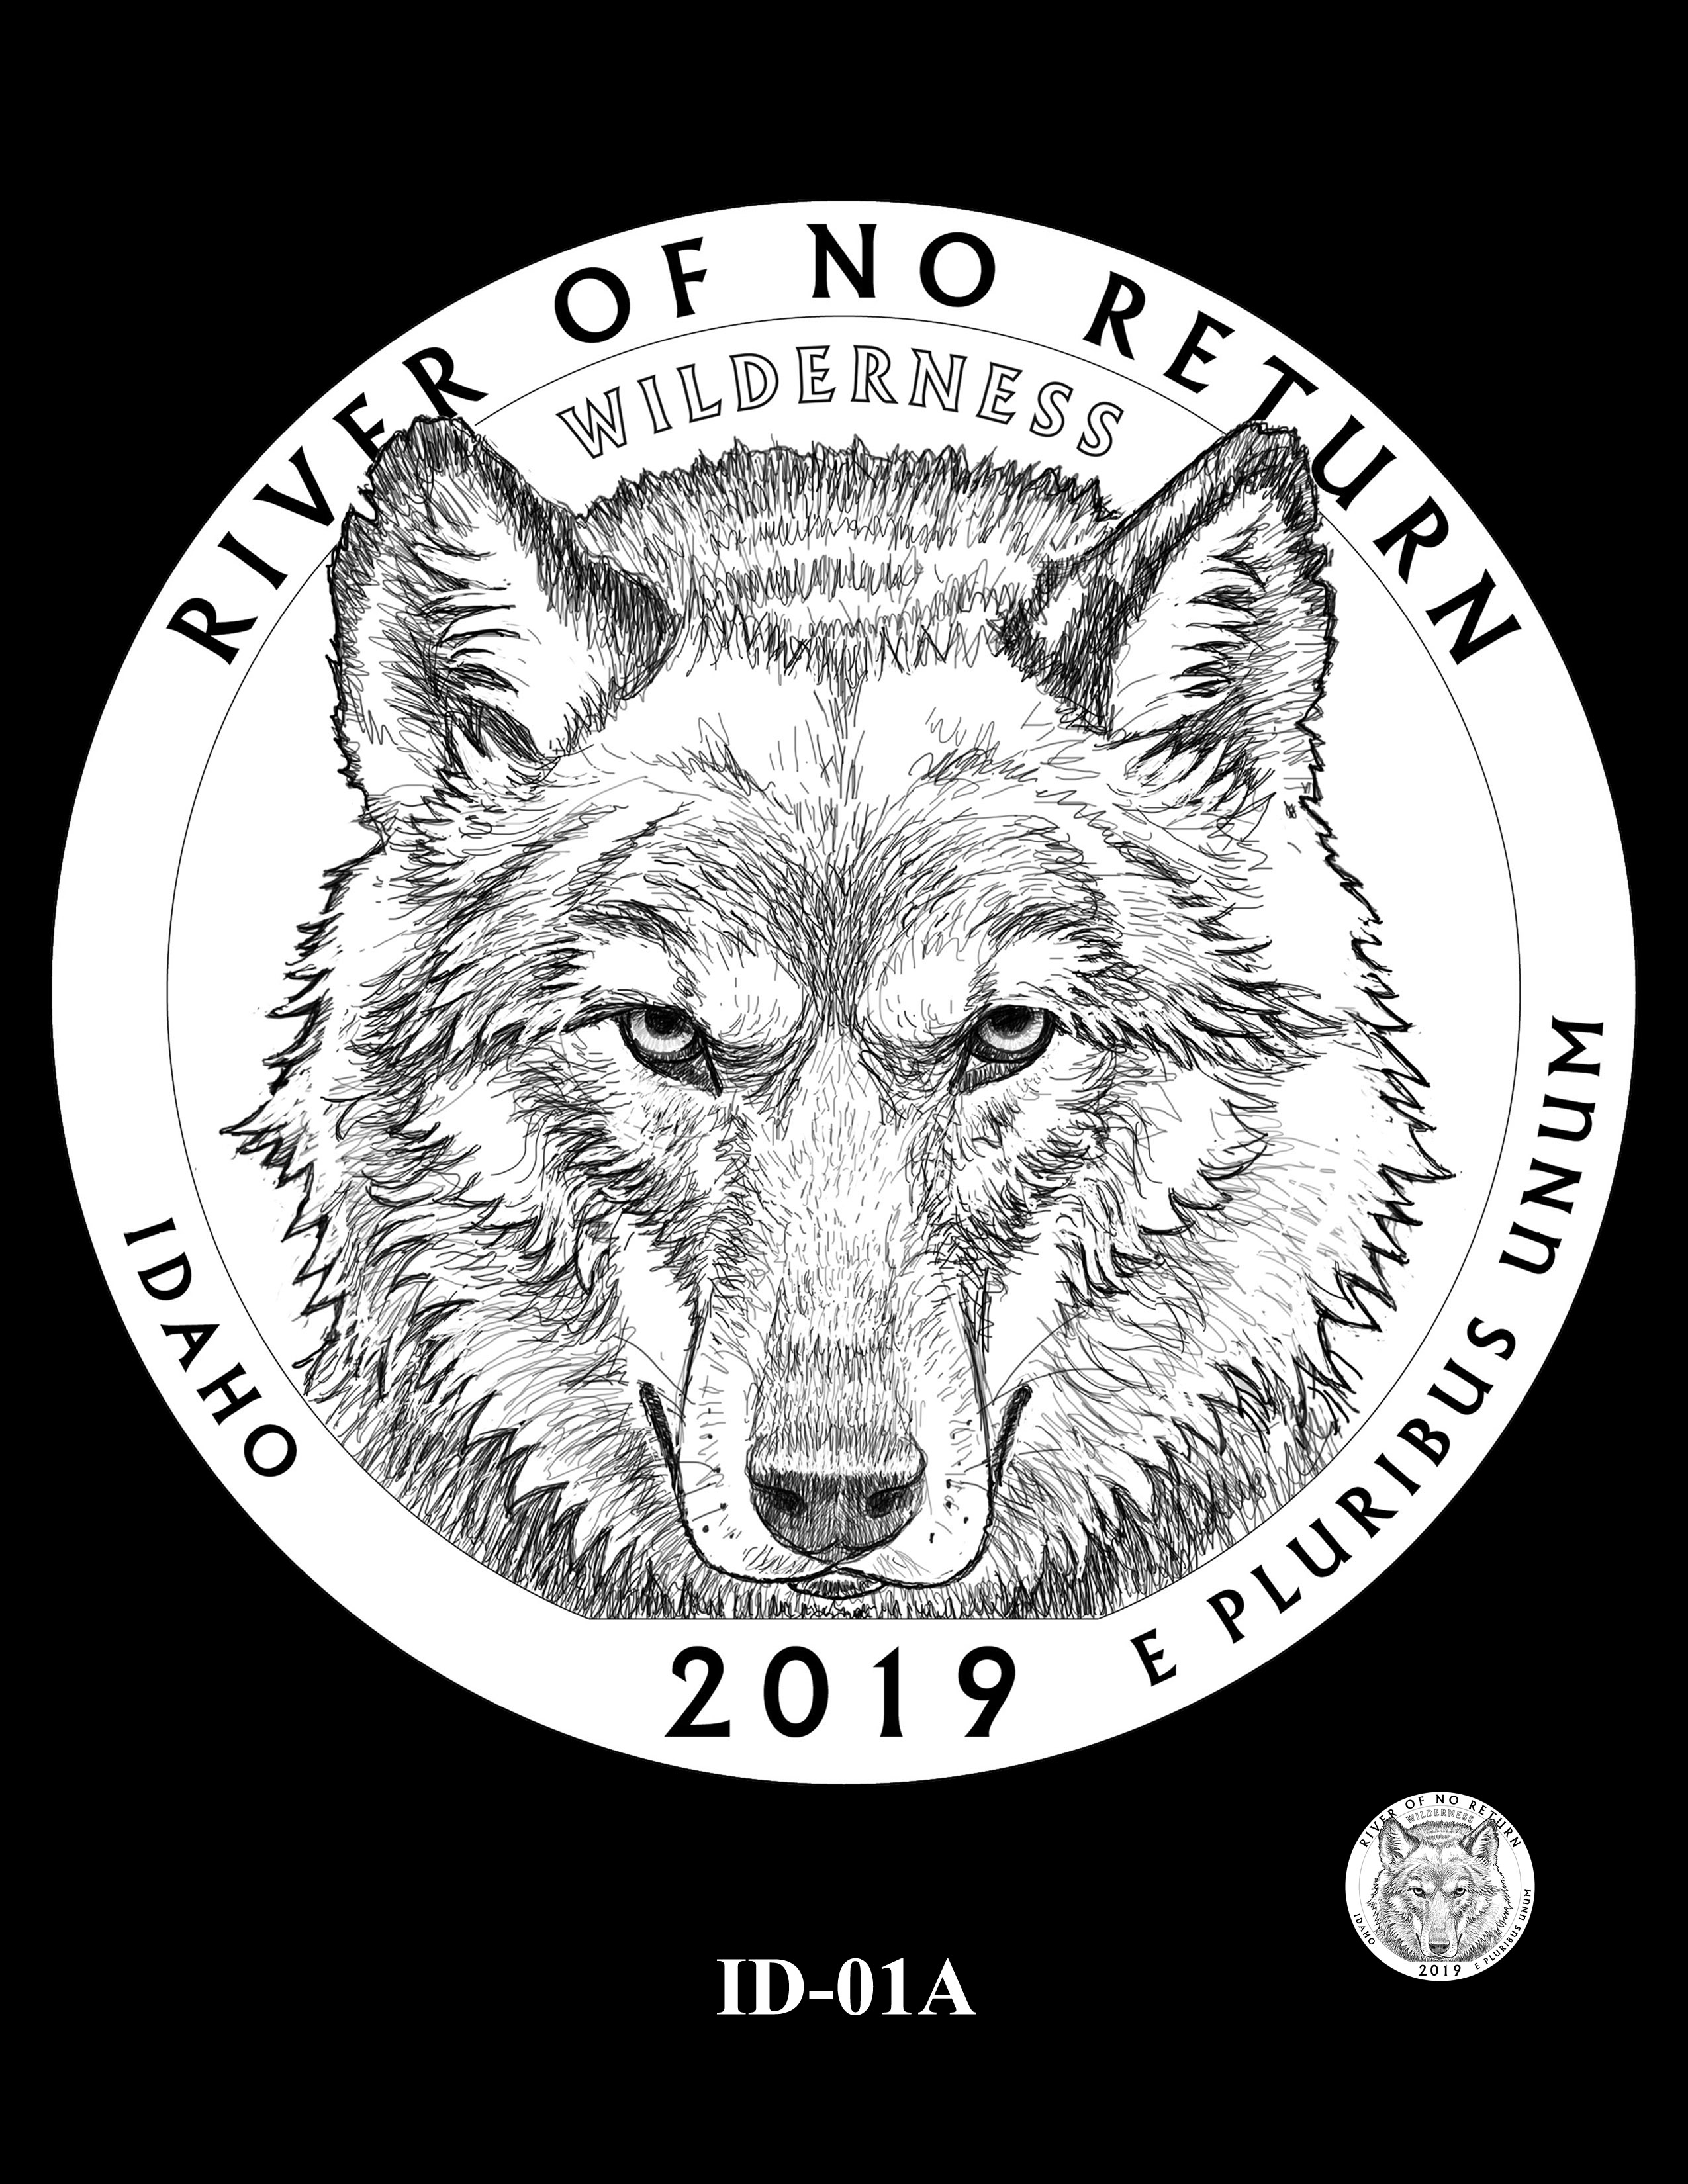 ID-01A -- 2019 America the Beautiful Quarters® Program